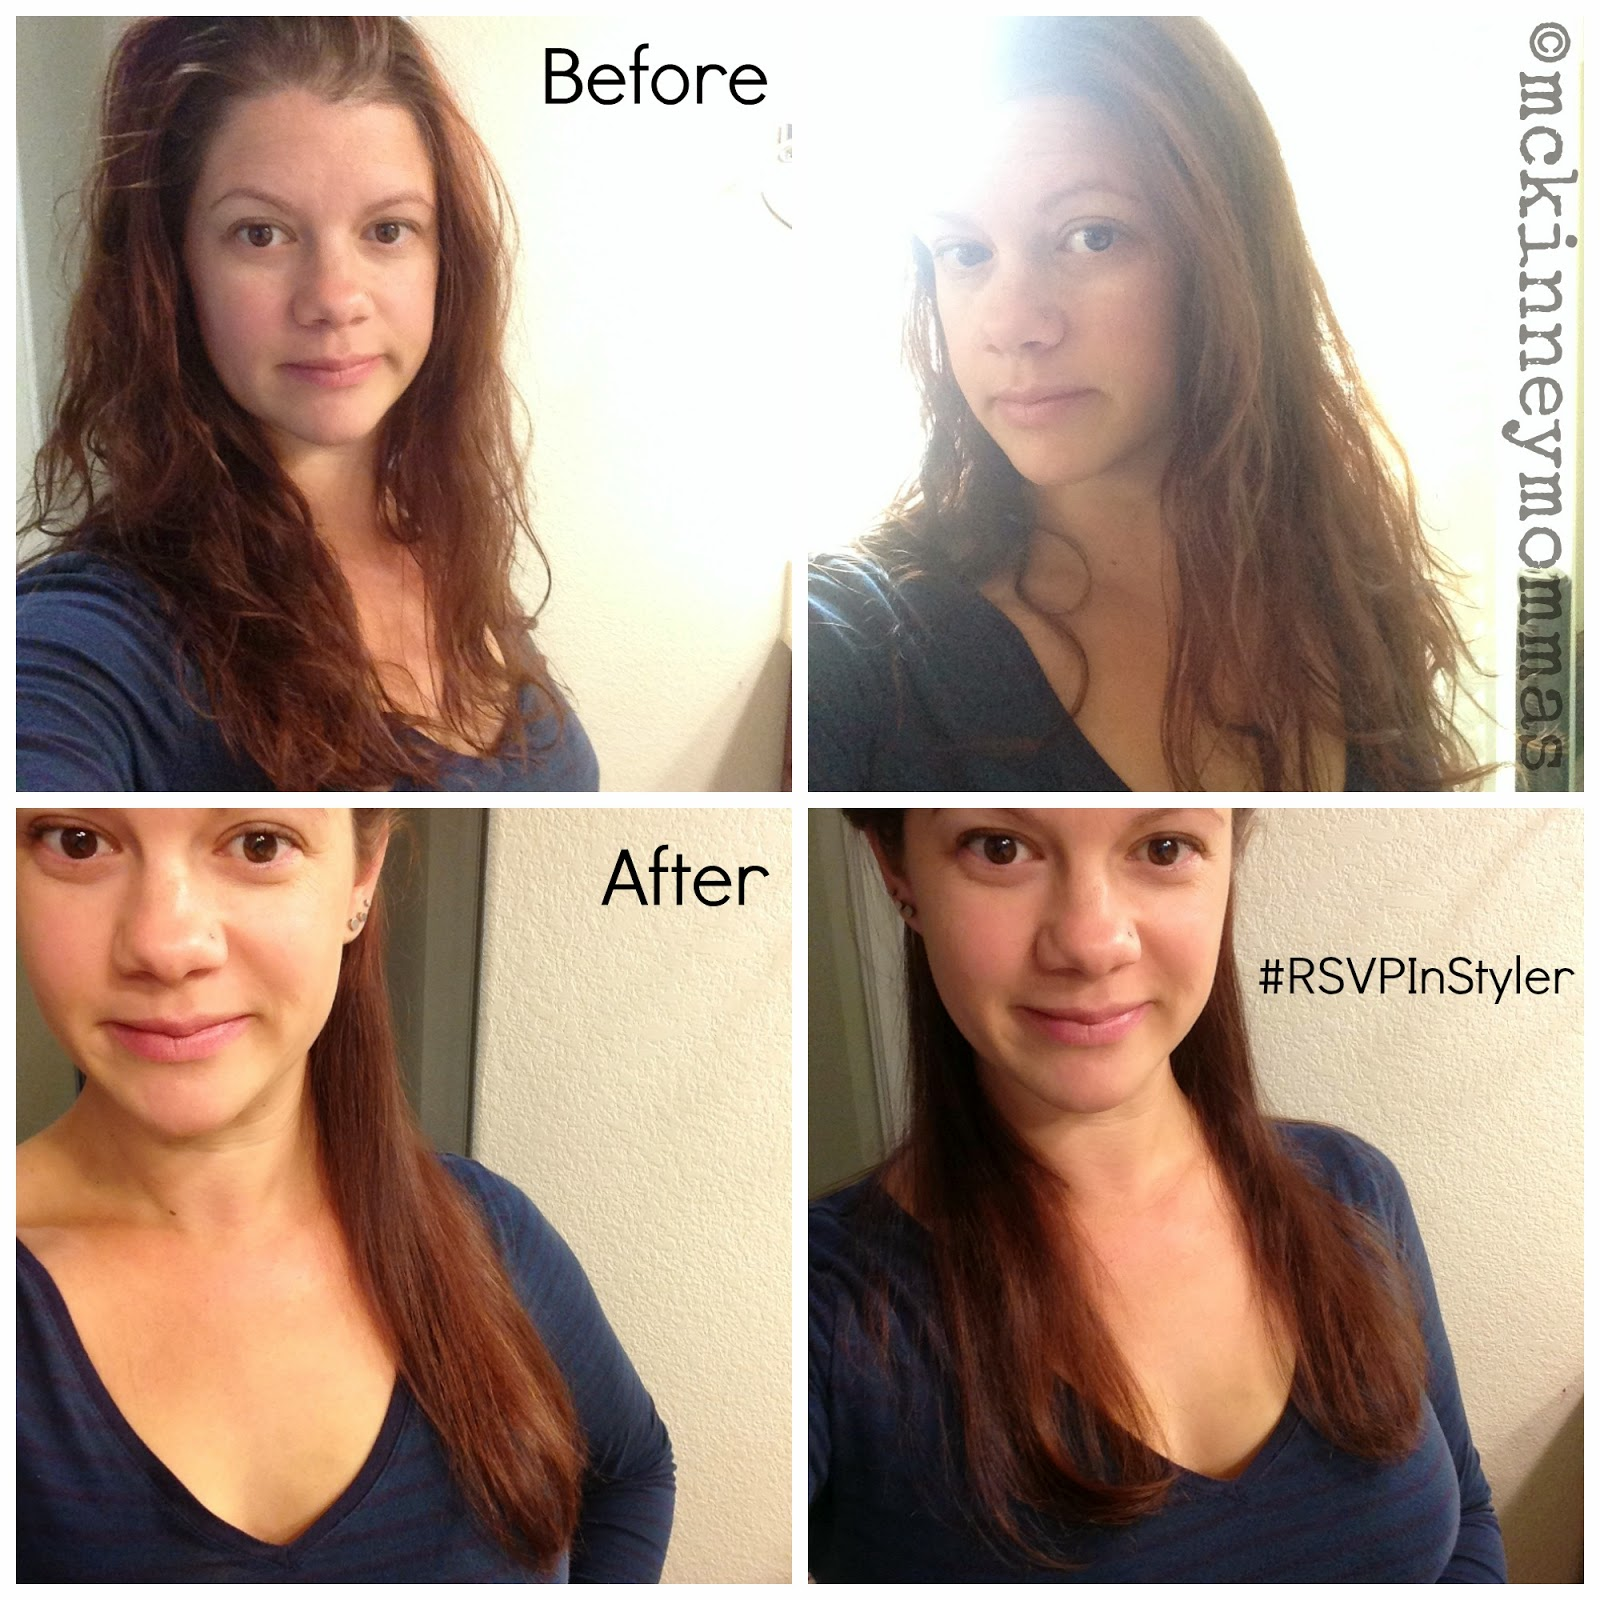 Before After Hair Photos